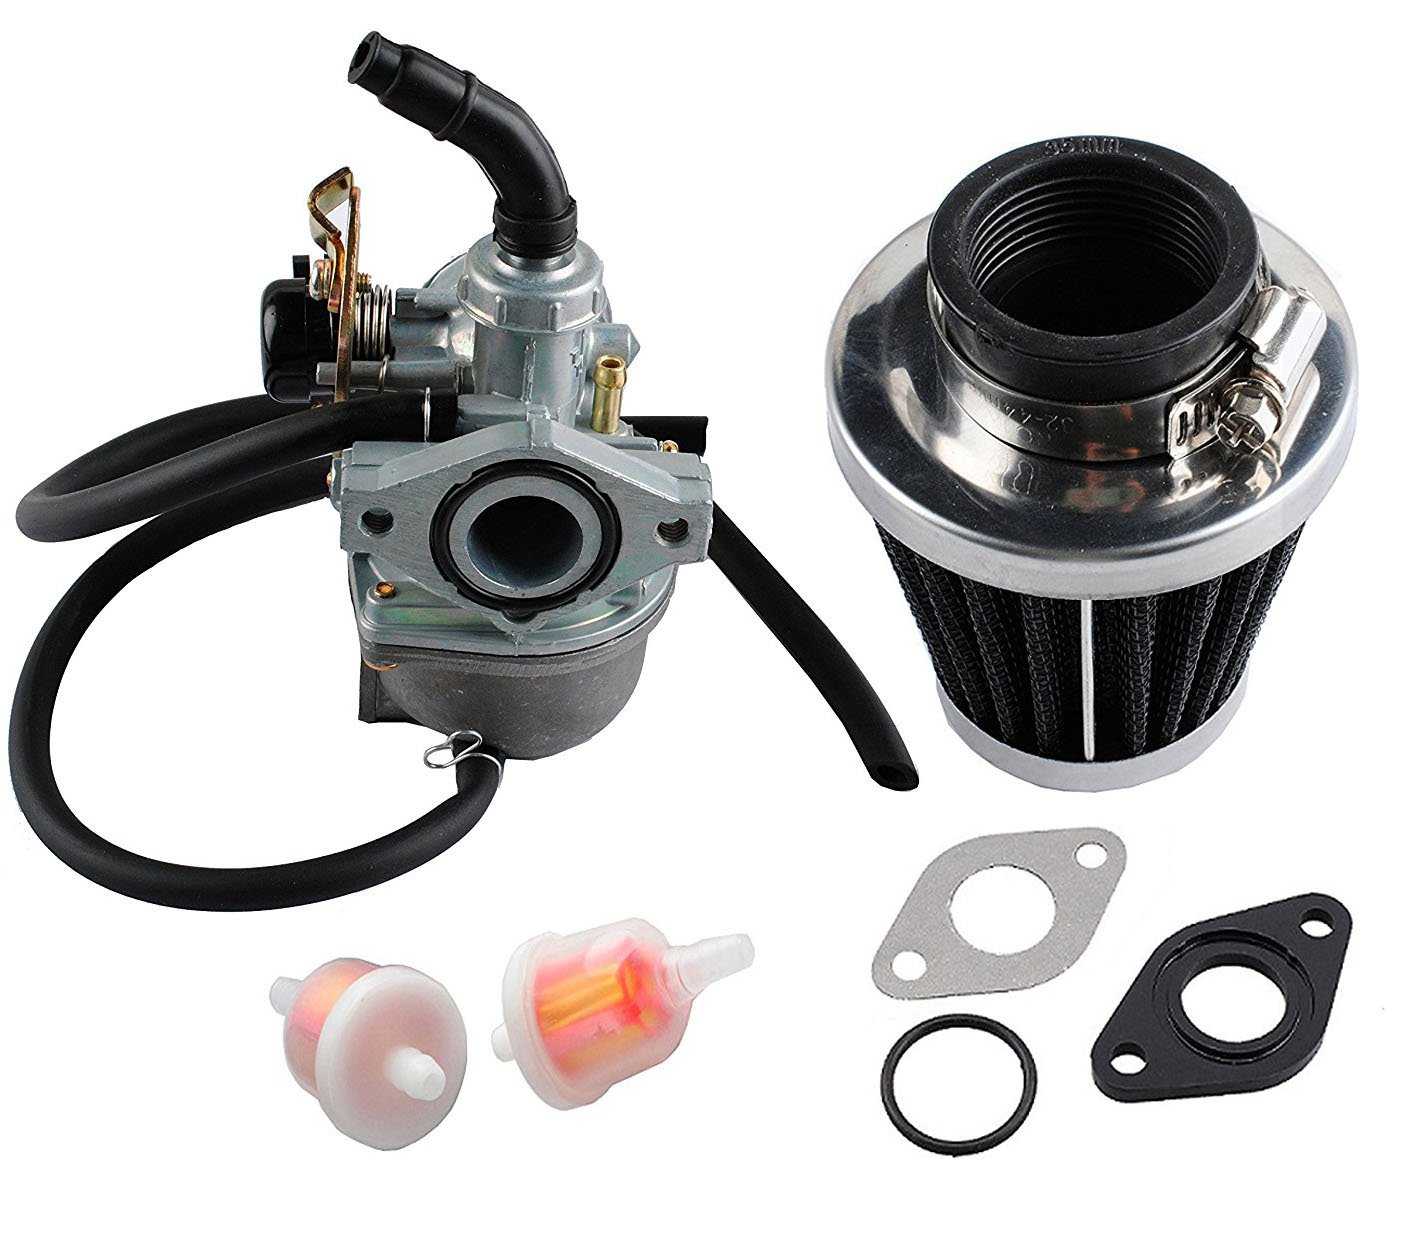 Podoy Pz19 Carburetor For Taotao Atv Cable Choke Carb Honda Ct90 Fuel Filter Gaskets With 35mm Motorcycle Air Filters Chinese Made 50cc 70cc 90cc 100cc